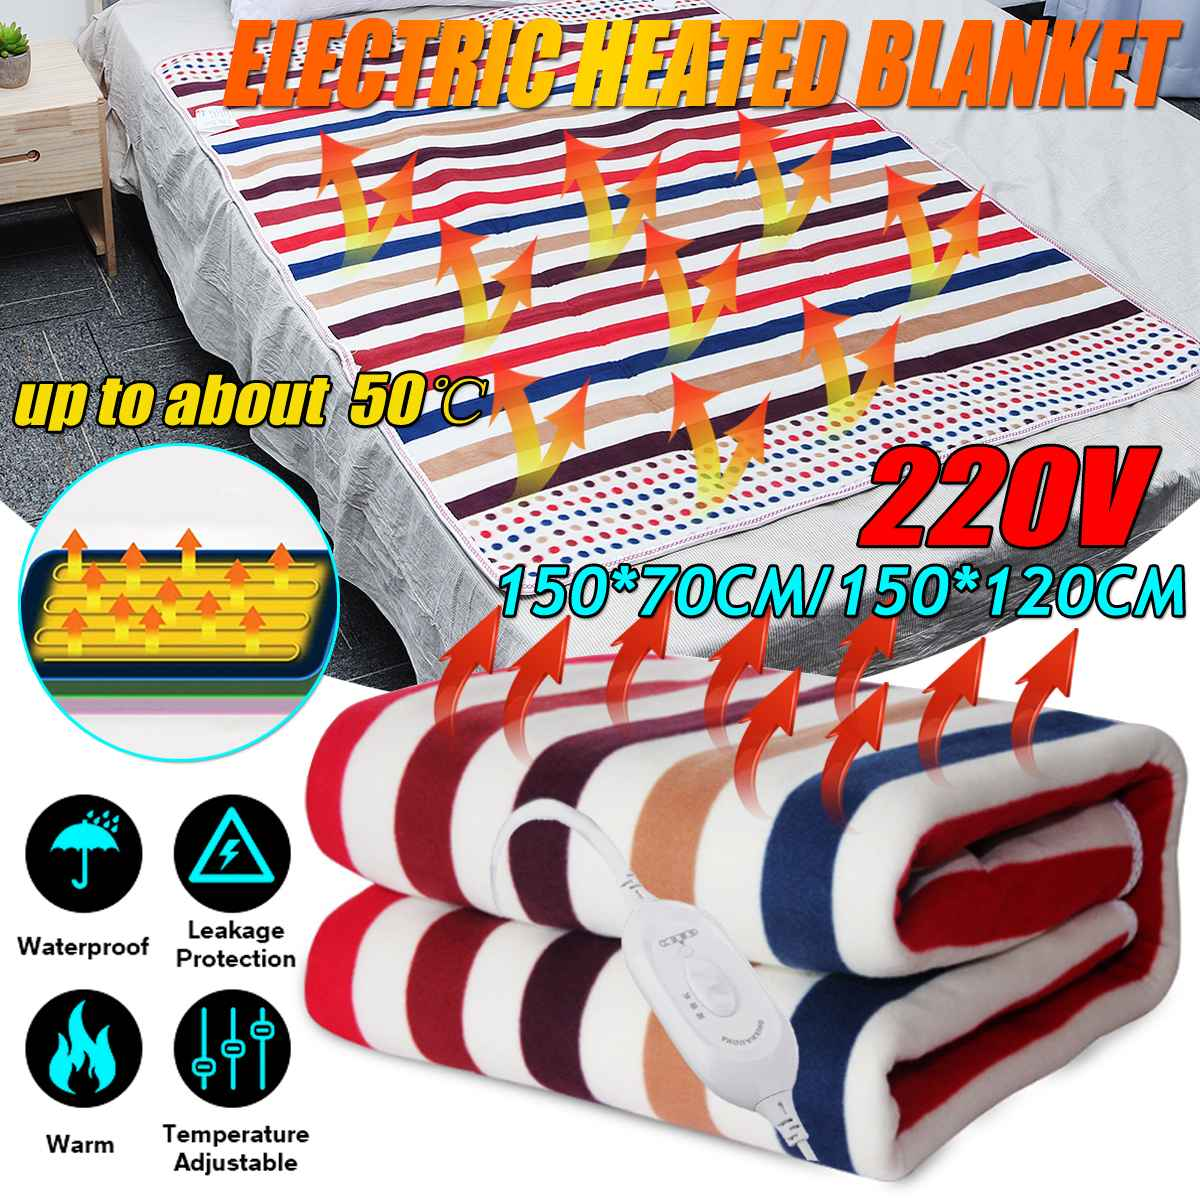 Electric Blanket 220V 150x120cm/70cm Electric Heated Blanket Thicker Heater Winter Warmer Pad Foldable Blanket With Controller